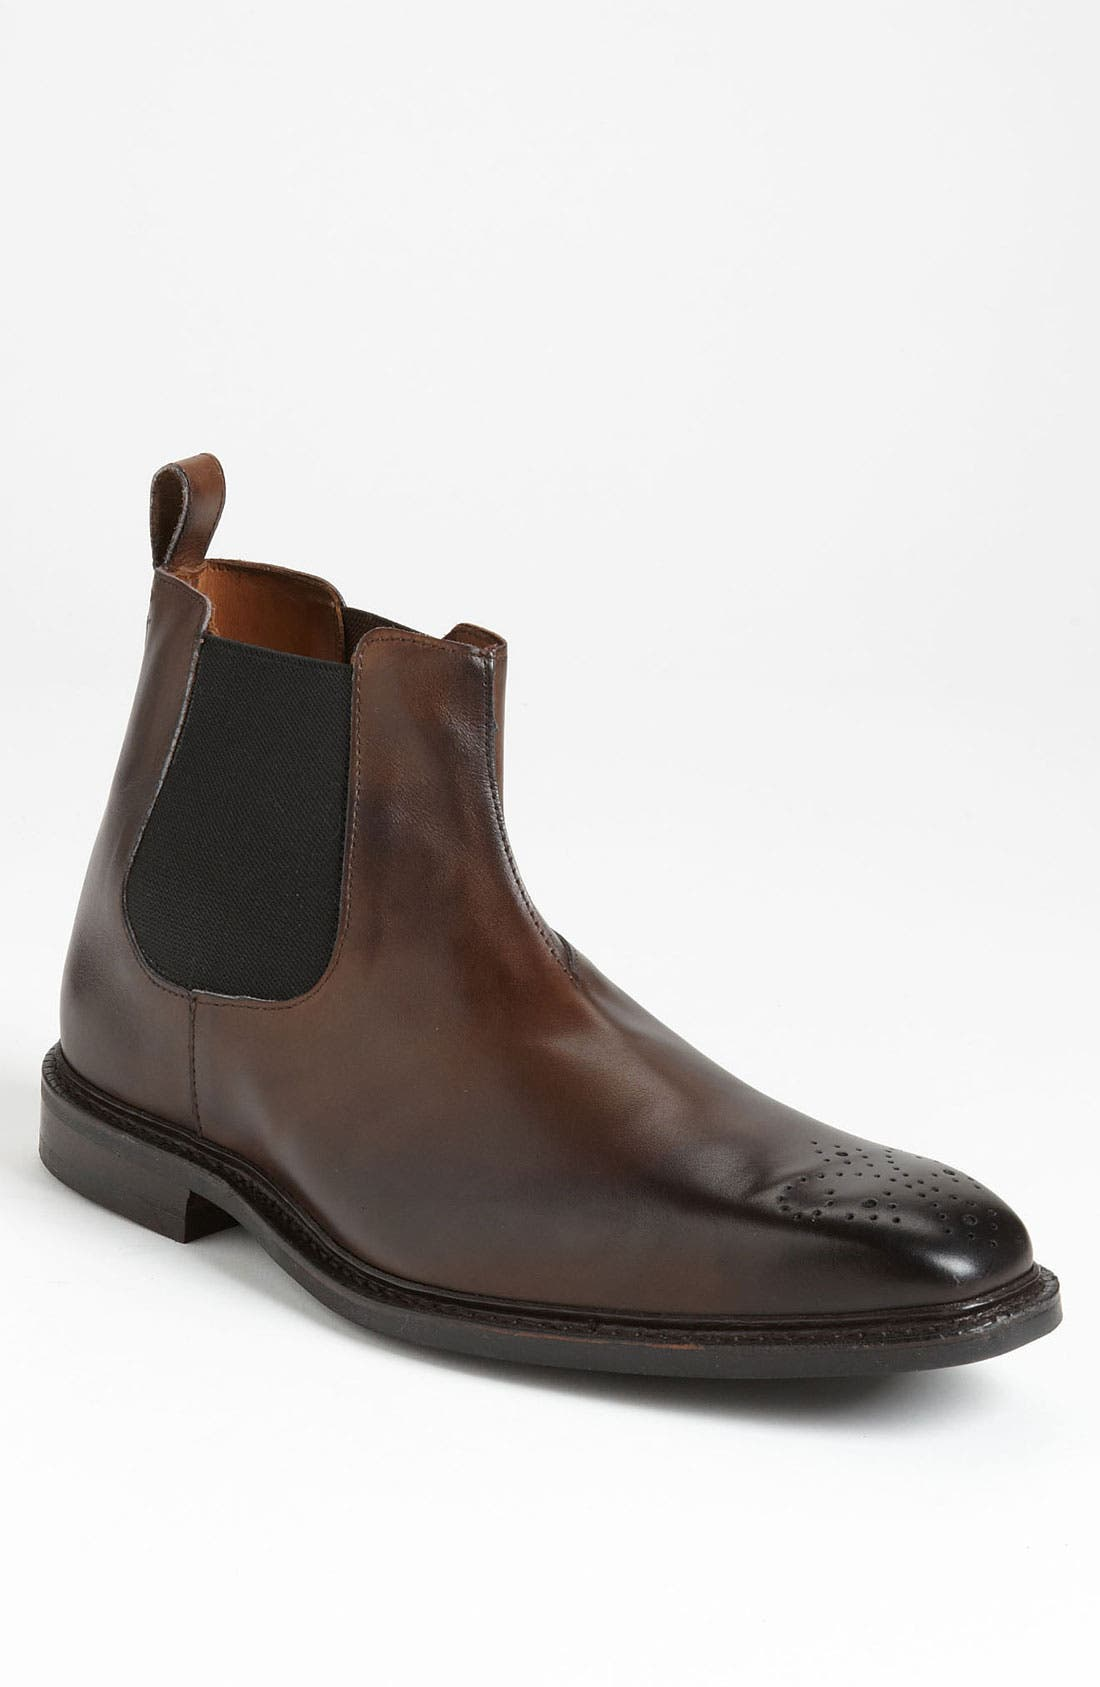 Alternate Image 1 Selected - Allen Edmonds 'Haight' Chelsea Boot (Online Only) (Men)